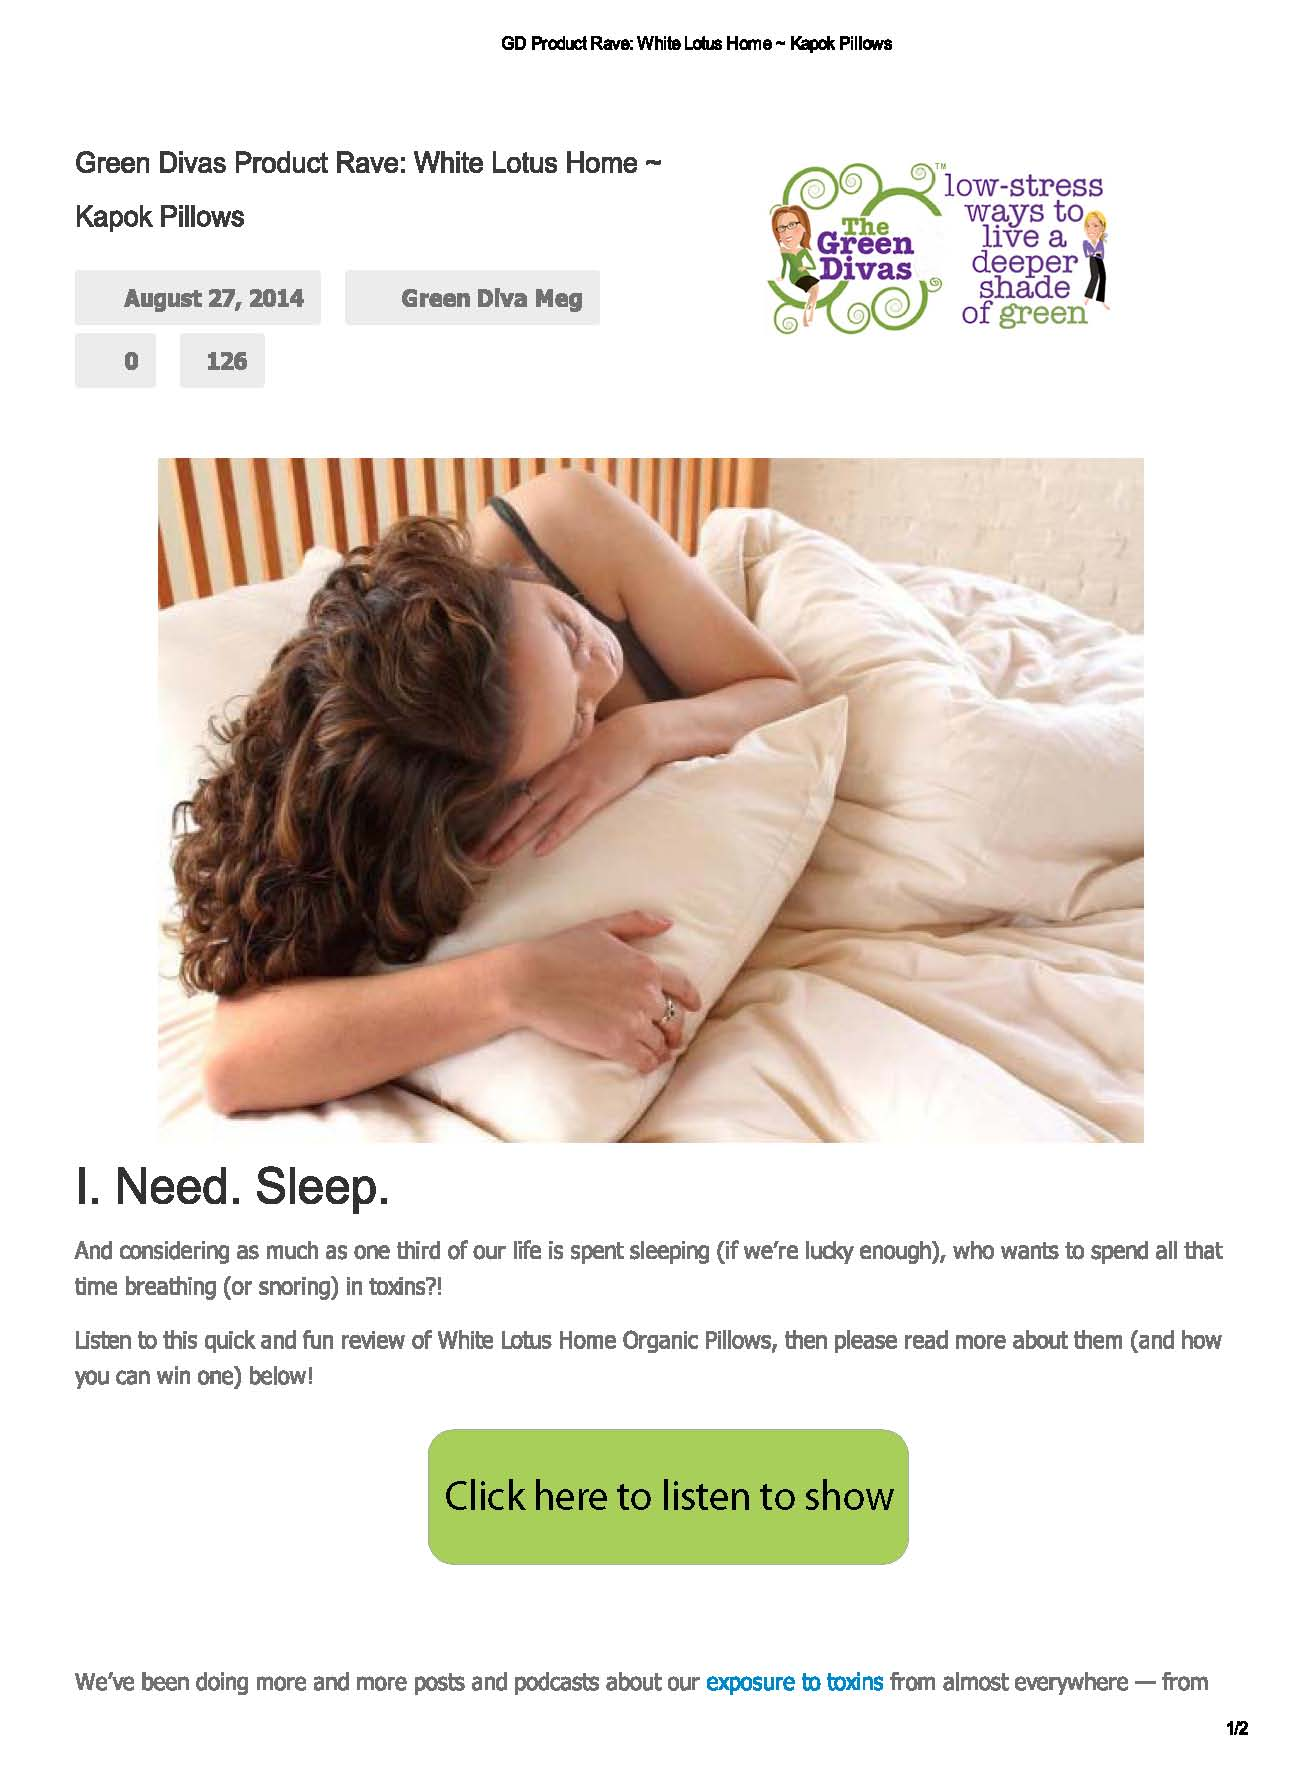 Green Divas Product Review Kapok Pillows August 27, 2014